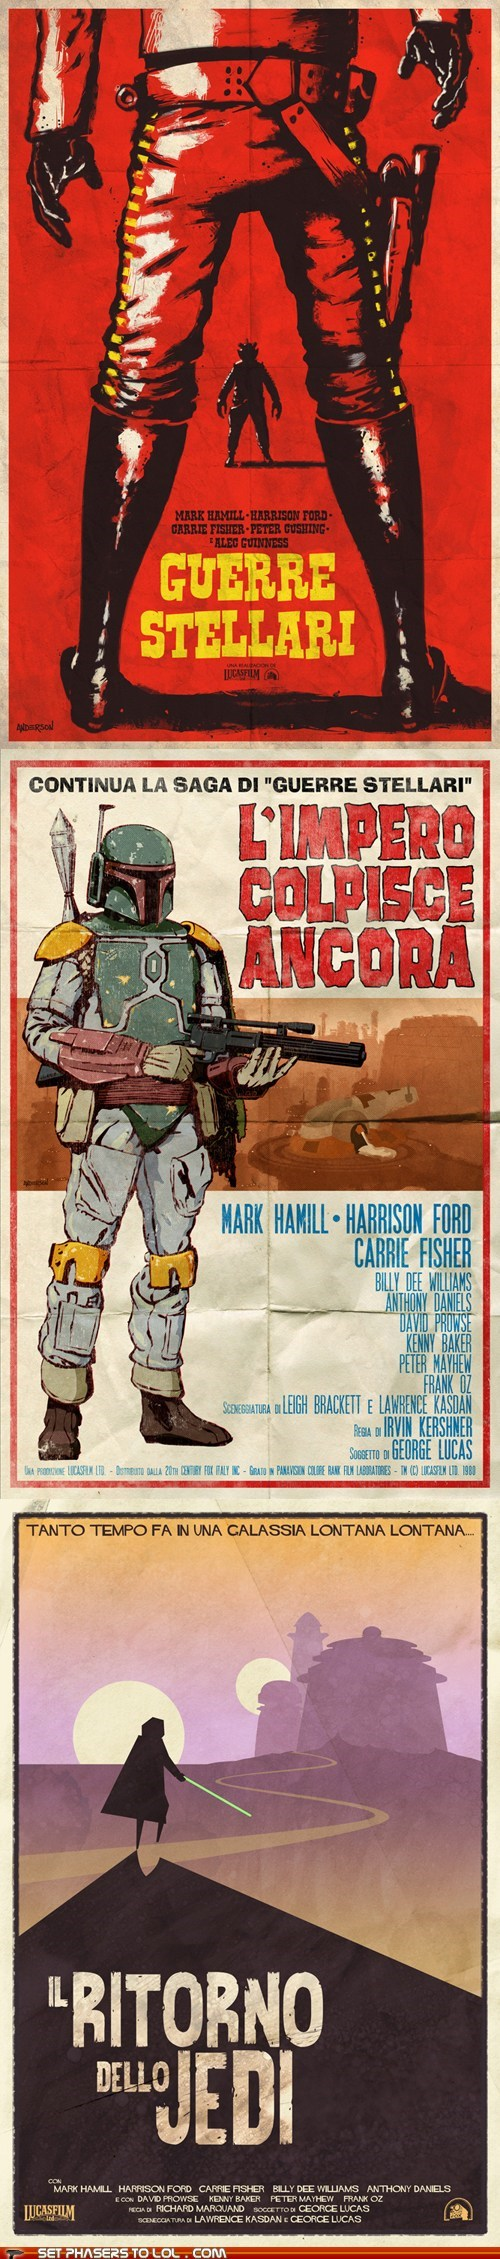 boba fett italian poster return of the jedi spaghetti western star wars The Empire Strikes Back - 6519709696